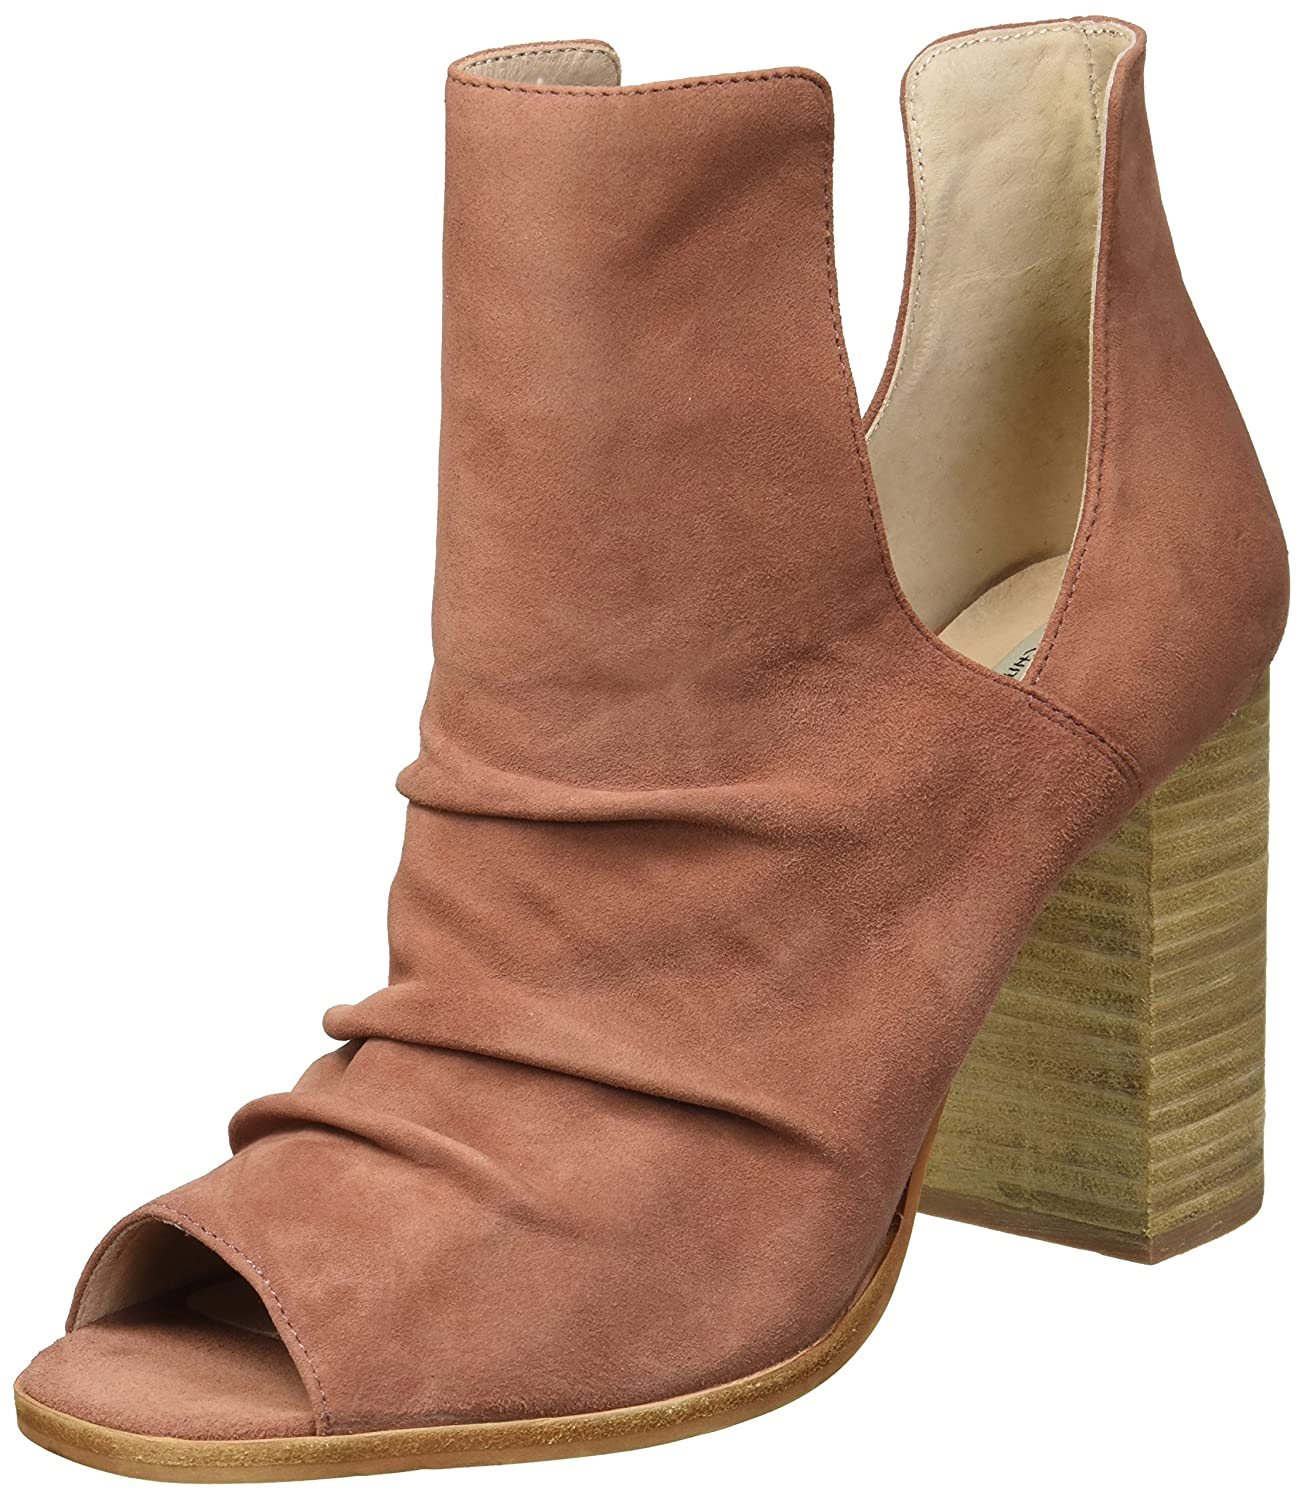 Chinese Laundry Ankle Kristin Cavallari Women's Lash Ankle Laundry Bootie B079RHNFZG 9.5 B(M) US|Mauve Suede dc3d92